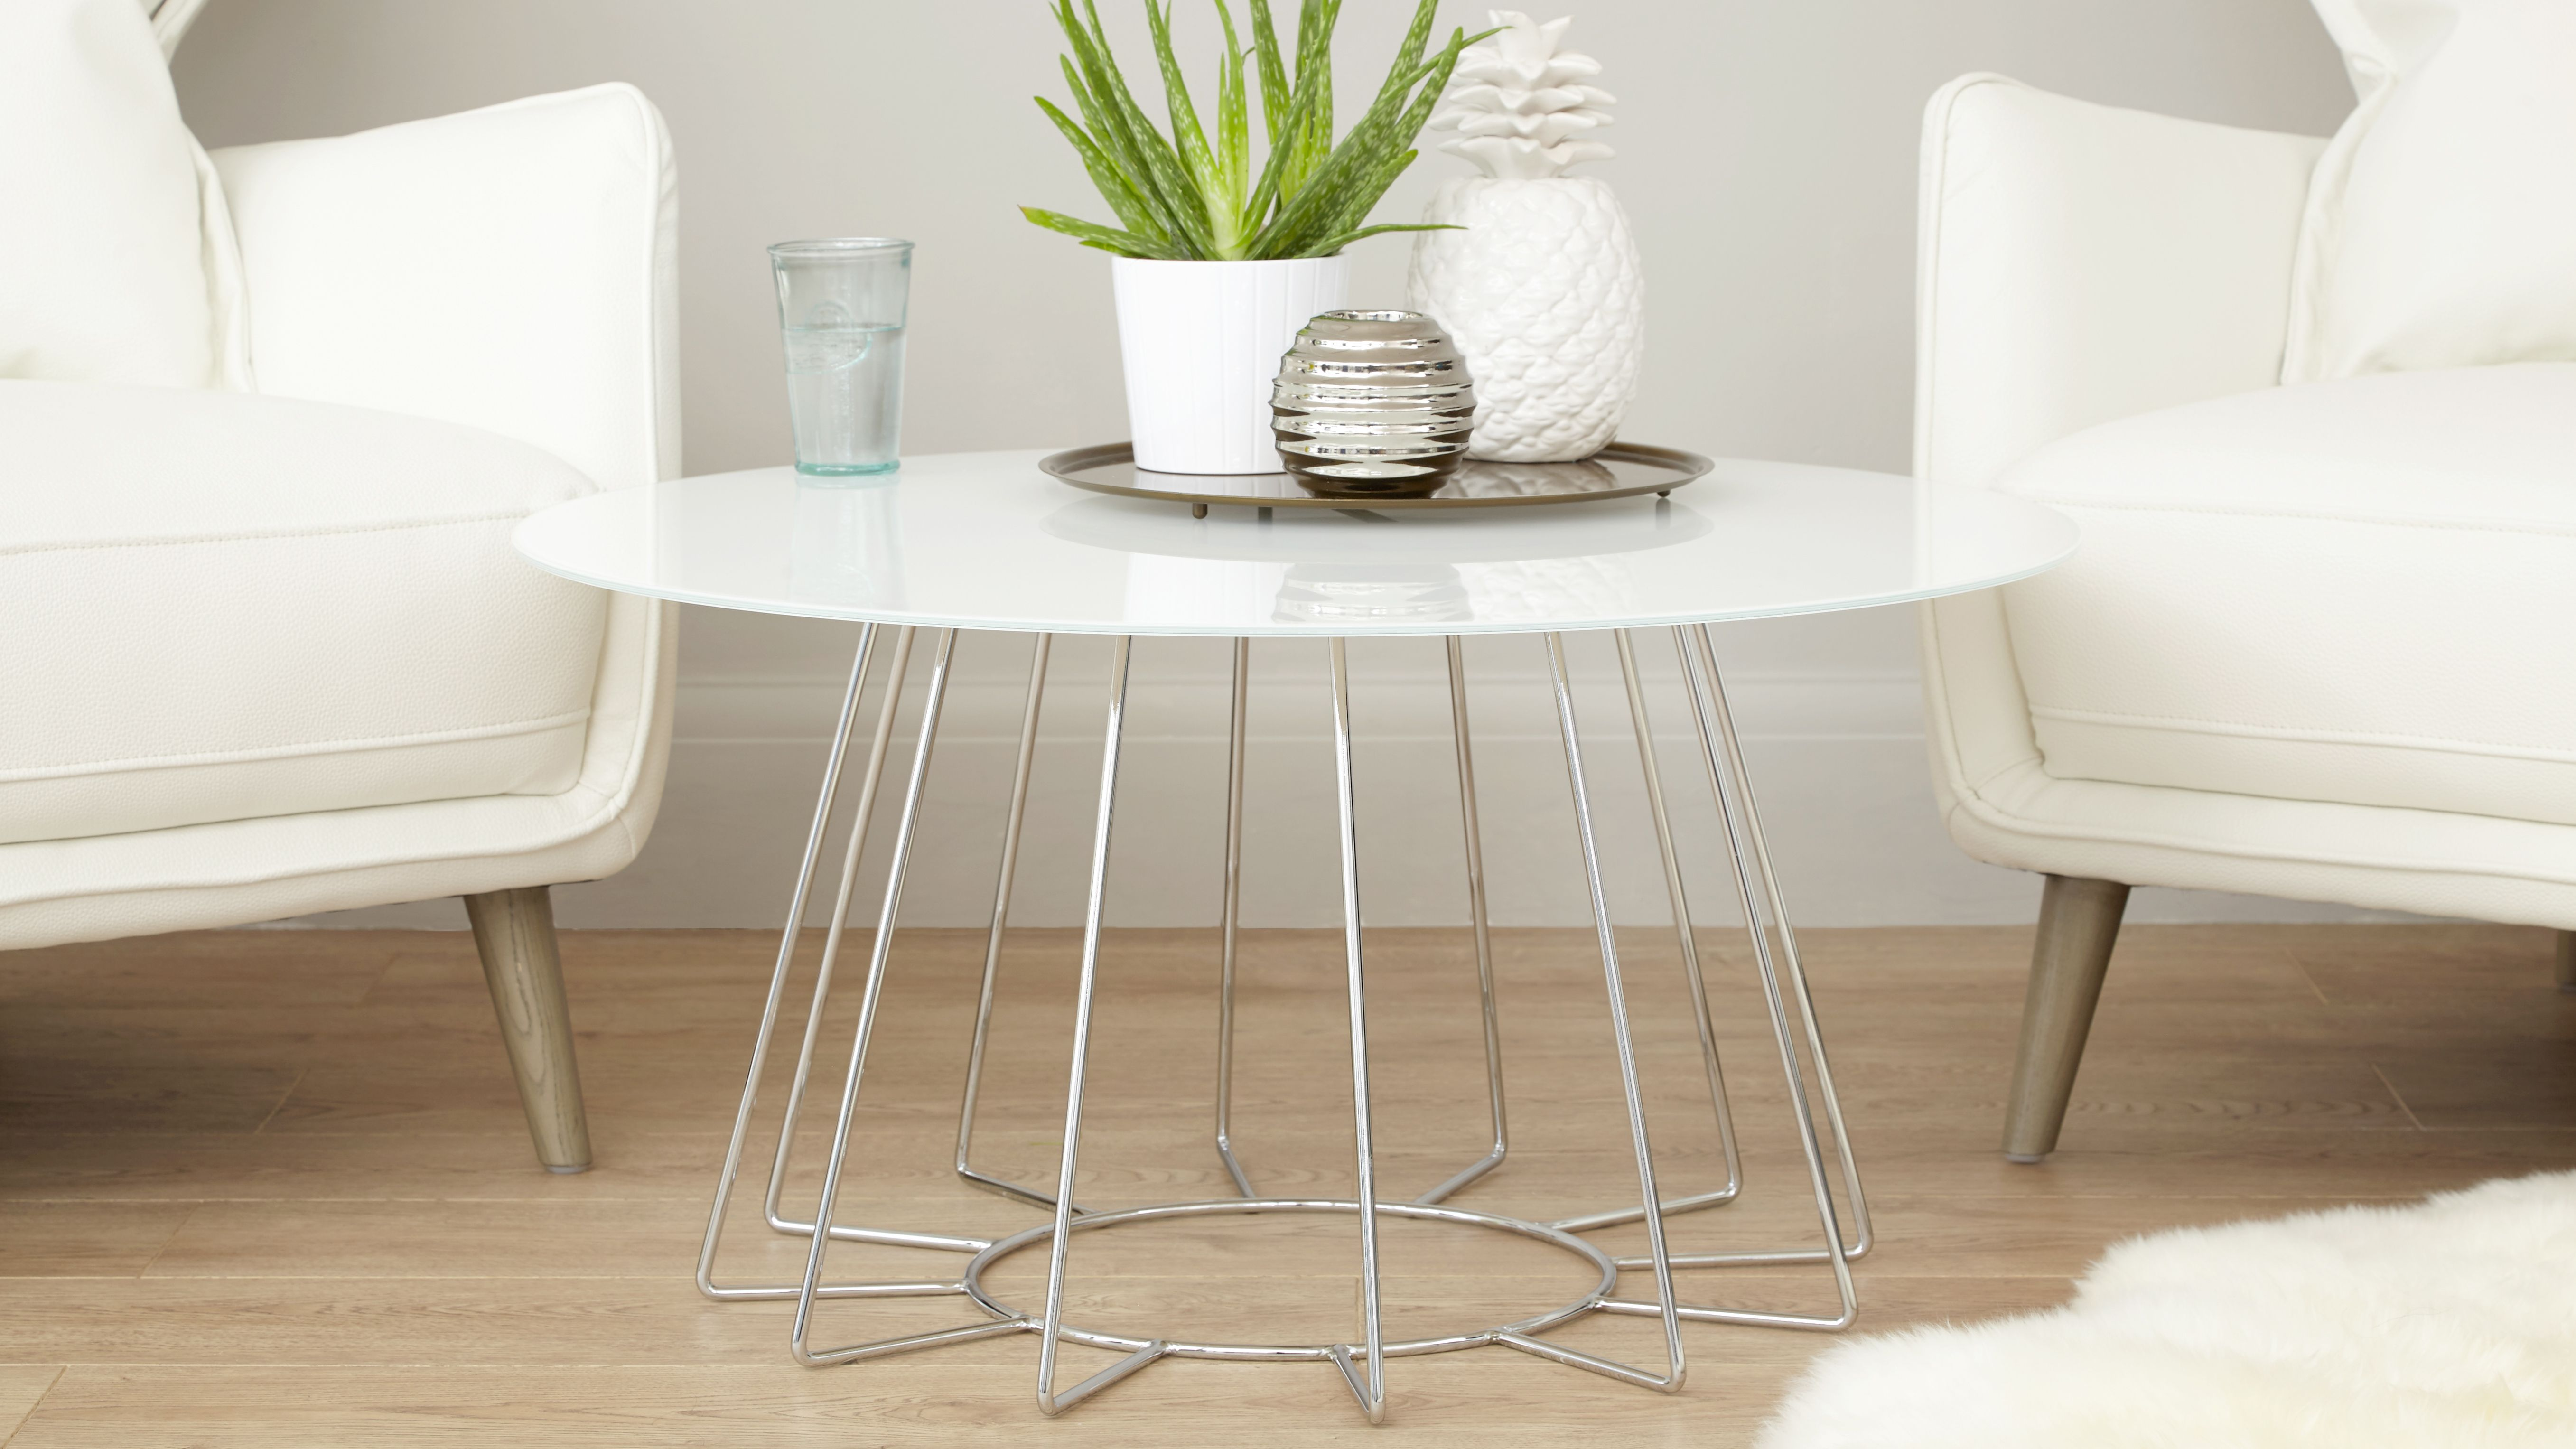 Orbit White Glass And Chrome Coffee Table White Glass Coffee Table Glass Coffee Table Coffee Table [ 3053 x 5428 Pixel ]